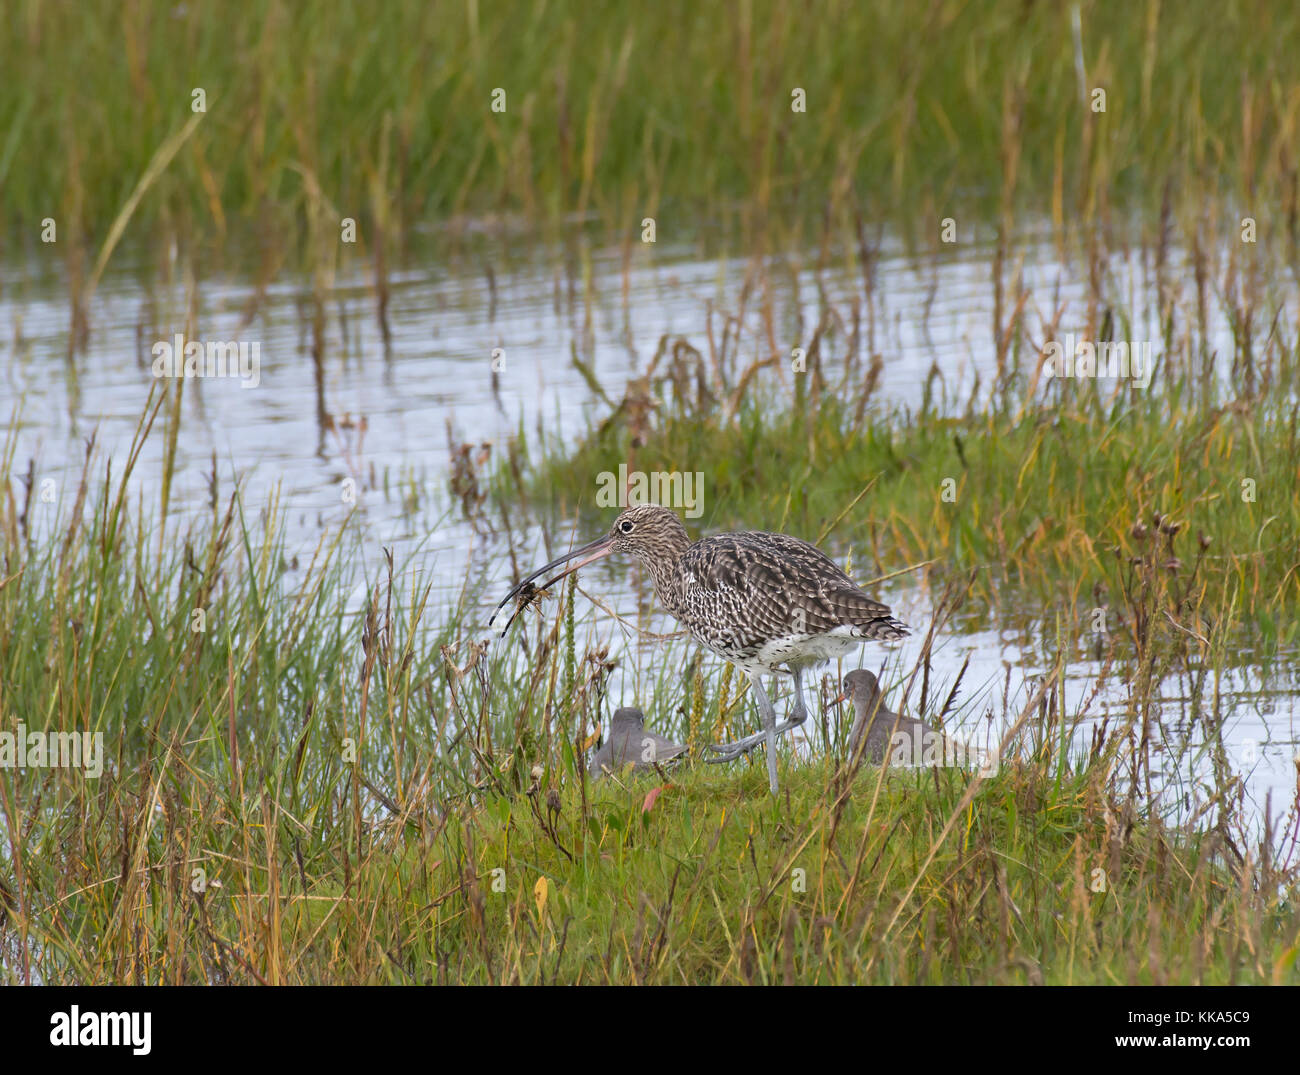 Curlew, Numenius arquata, with a crab in Morecambe Bay, Lancashire, UK Stock Photo